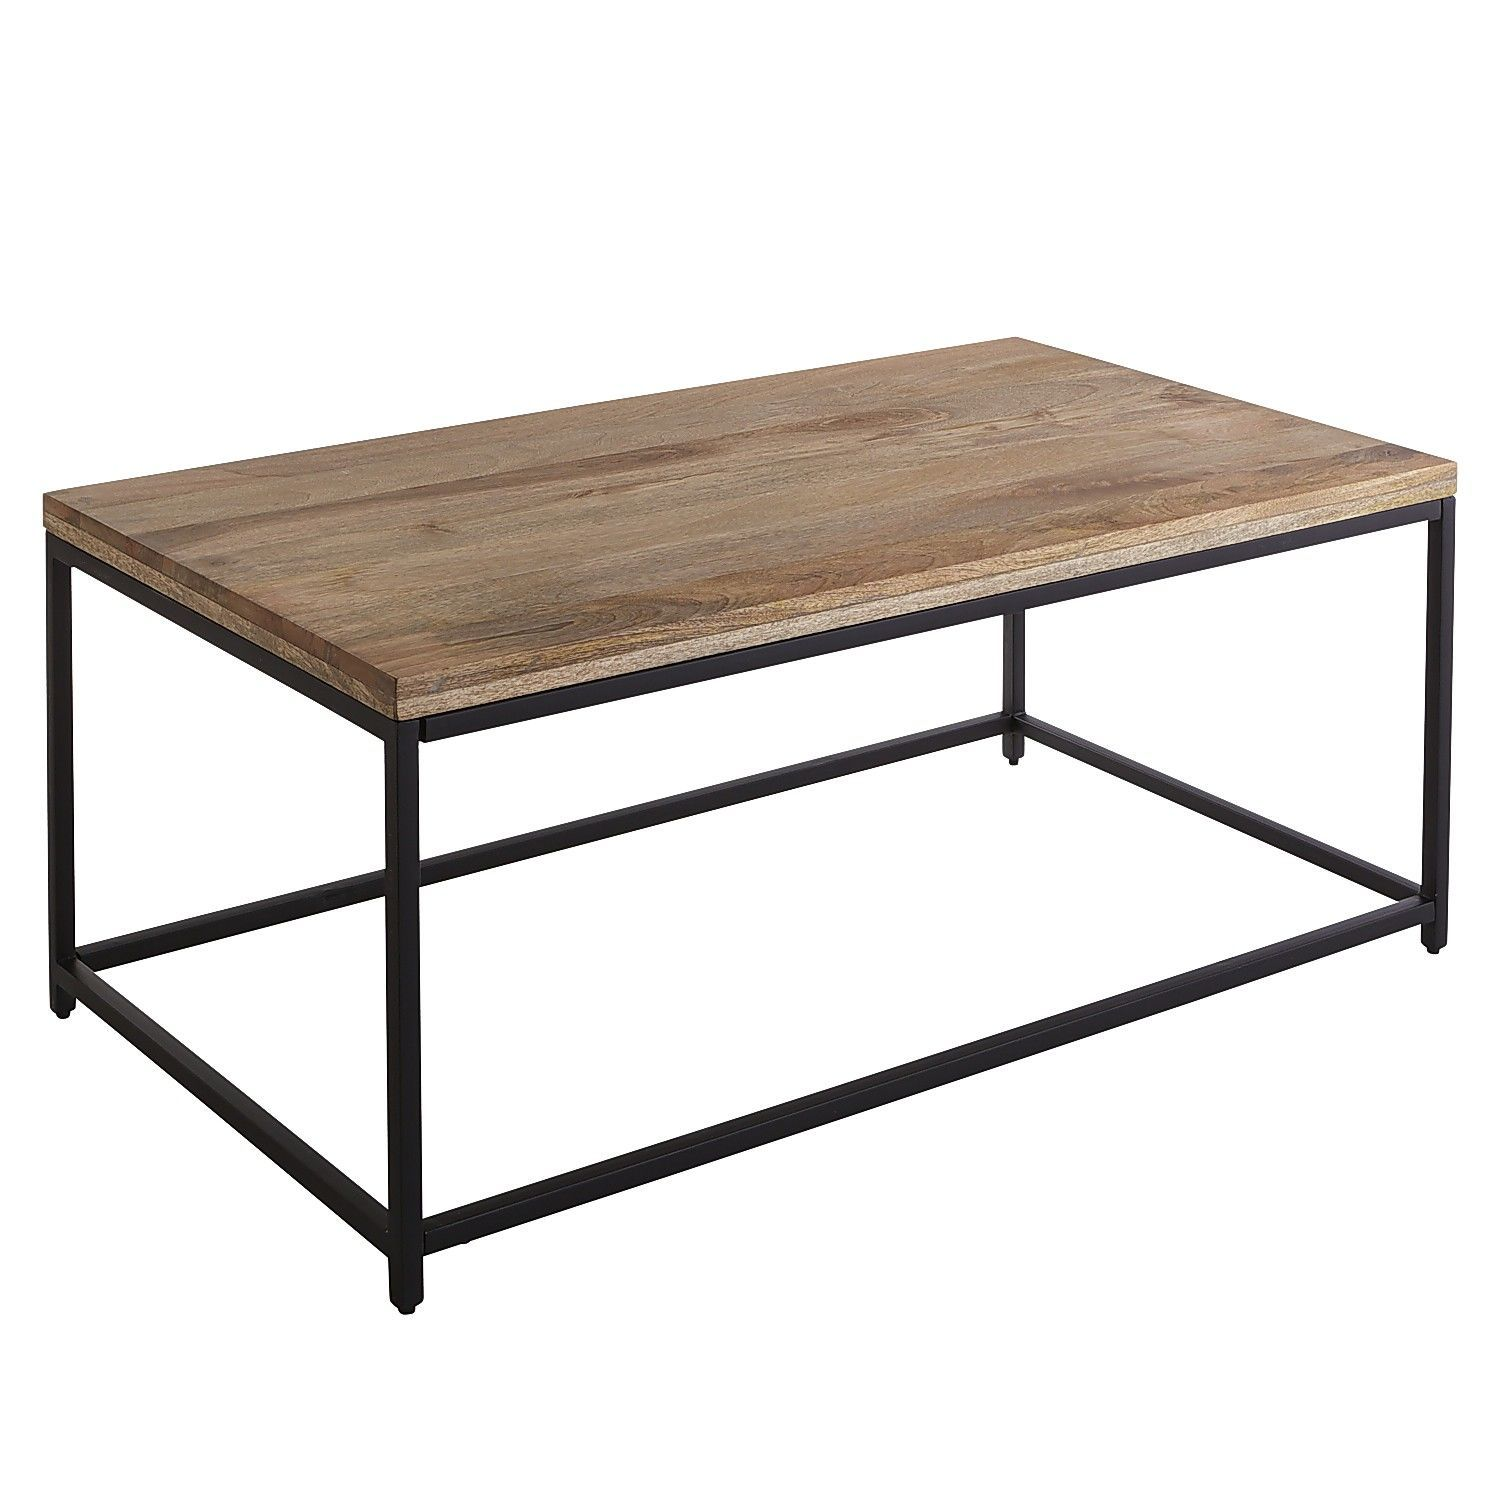 Takat Natural Mango Wood Coffee Table Lakehouse Mango